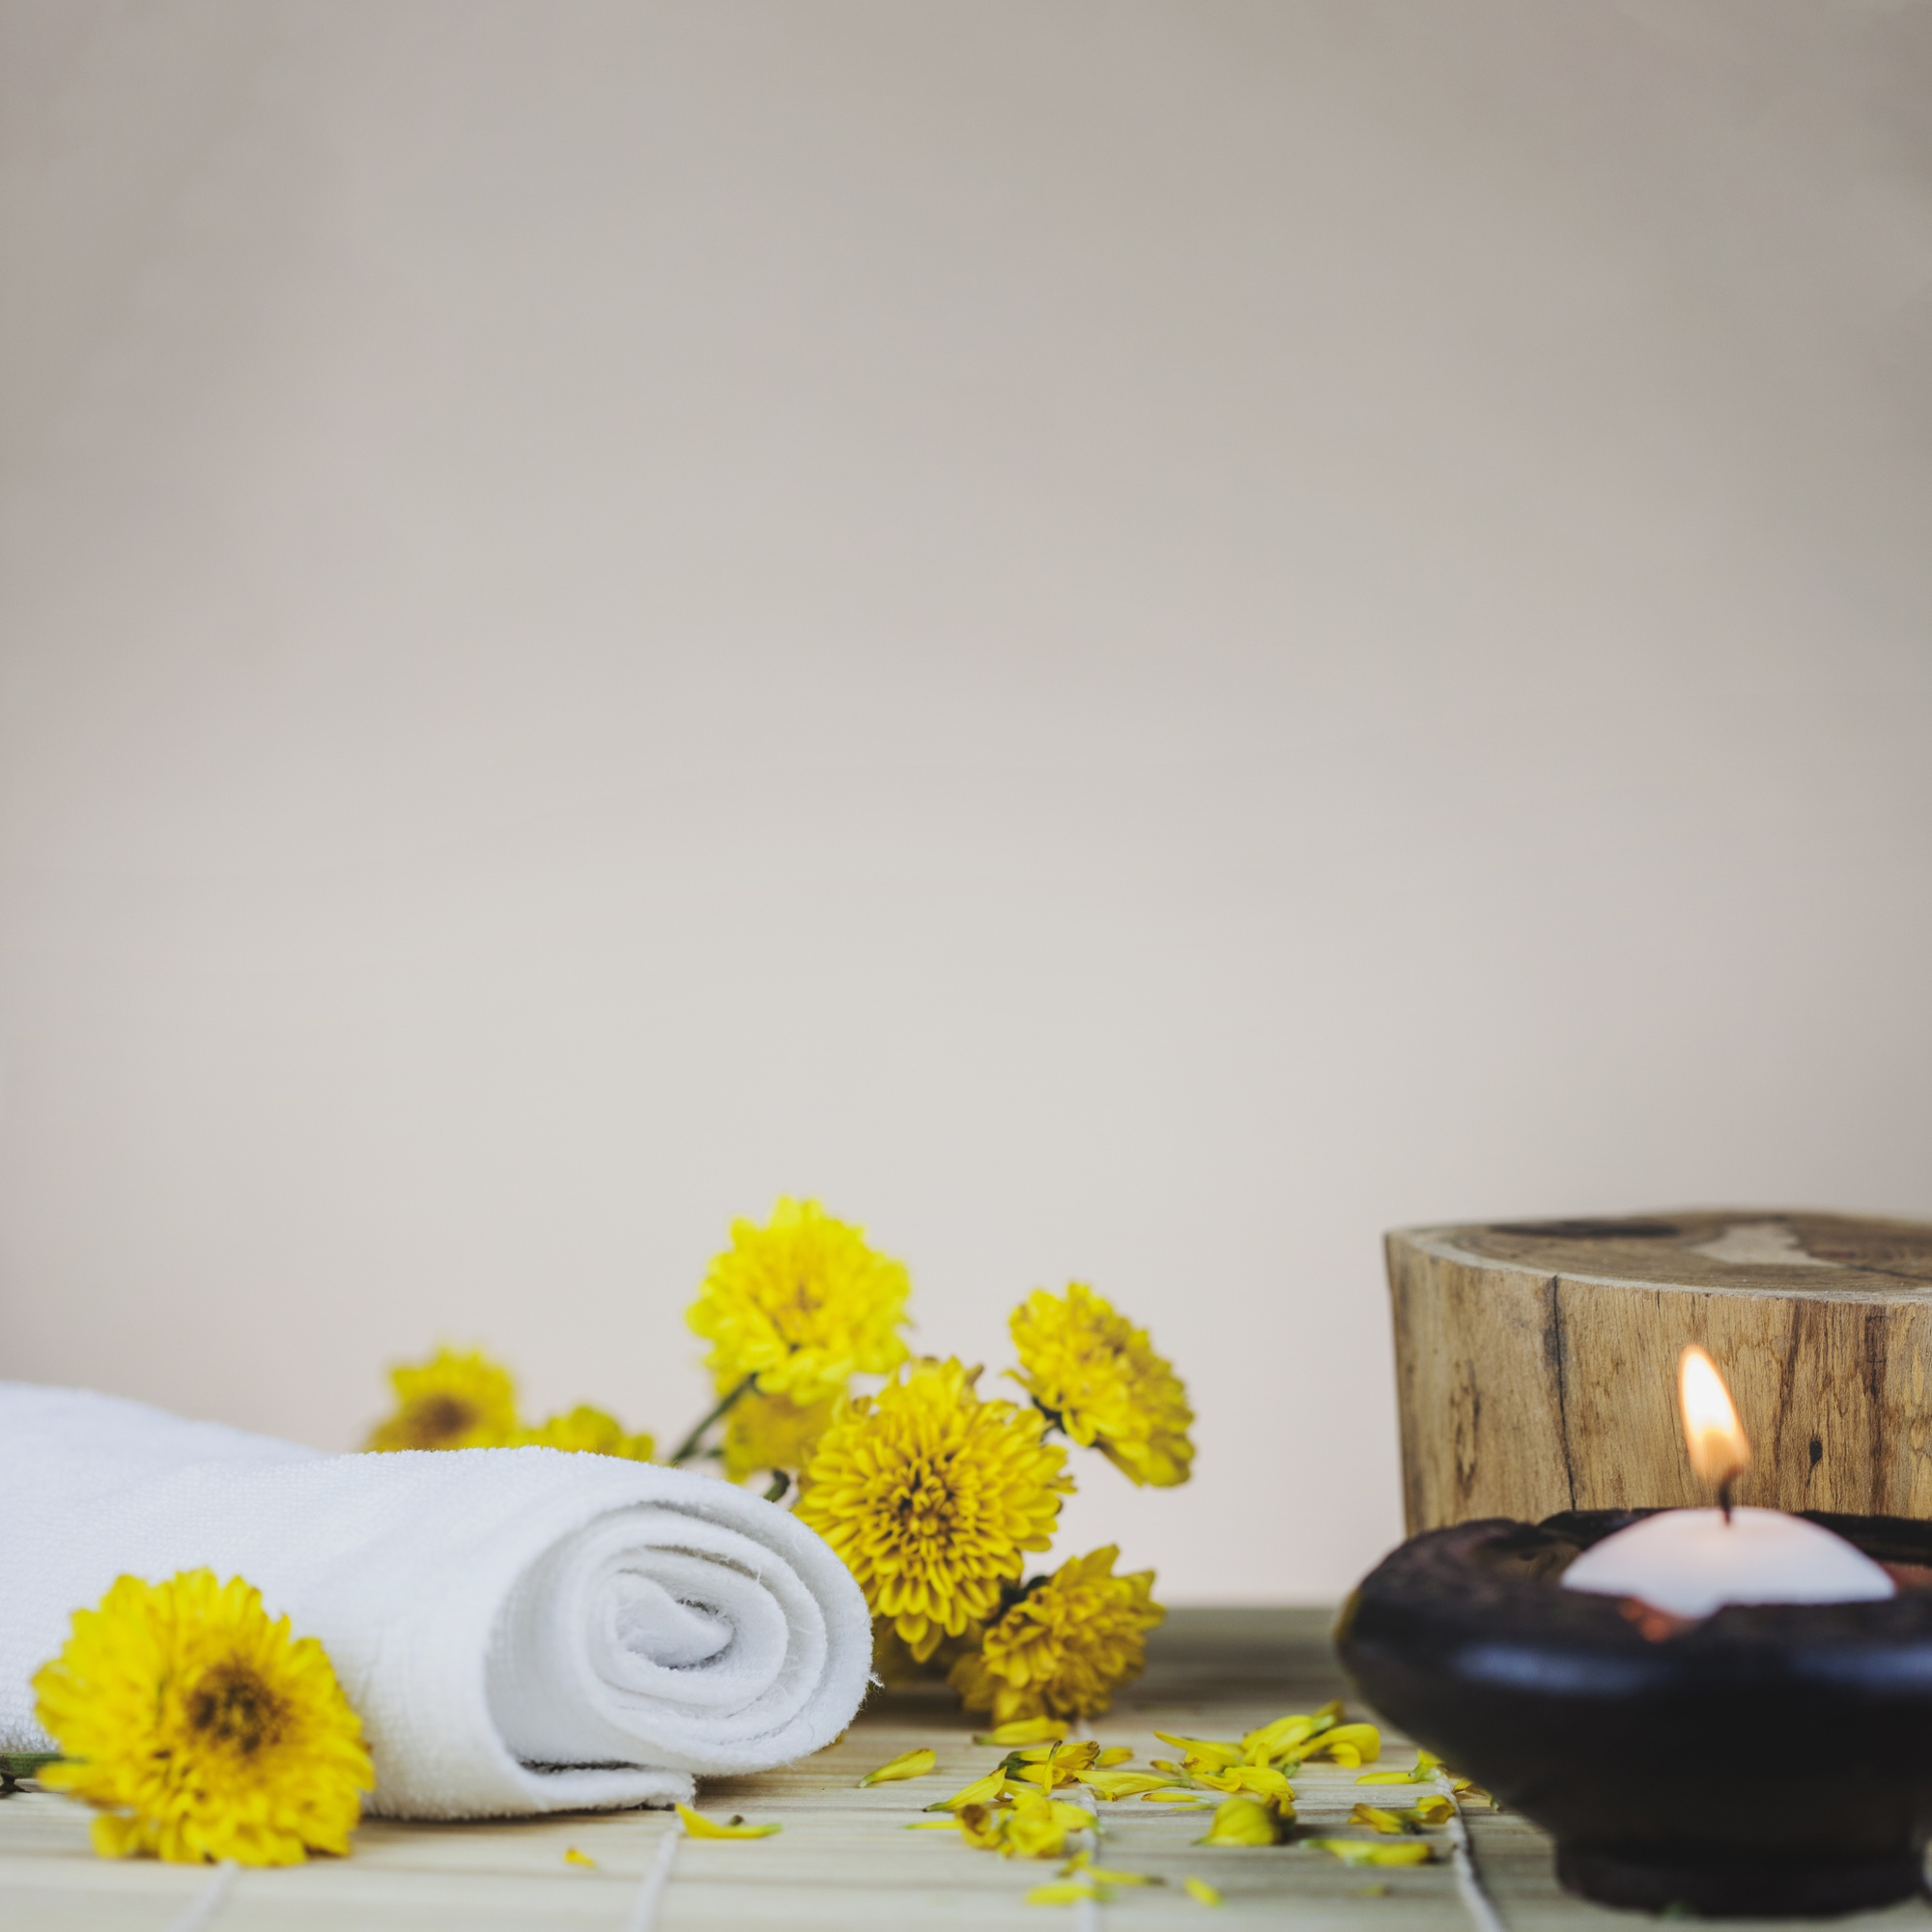 Towels, flowers, trunk and candle